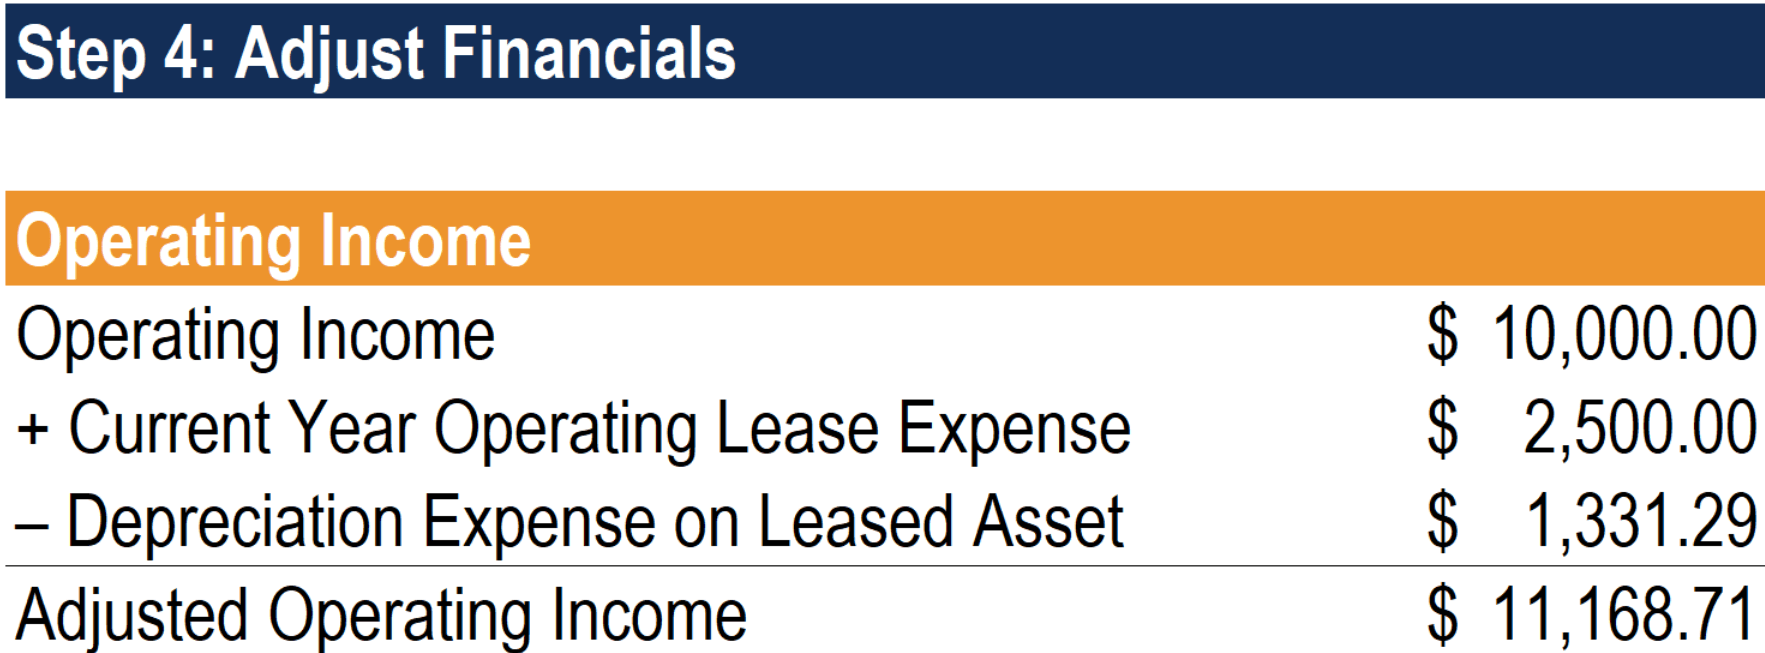 Operating Lease - Full Adjustment Method Step 4 - Operating Income